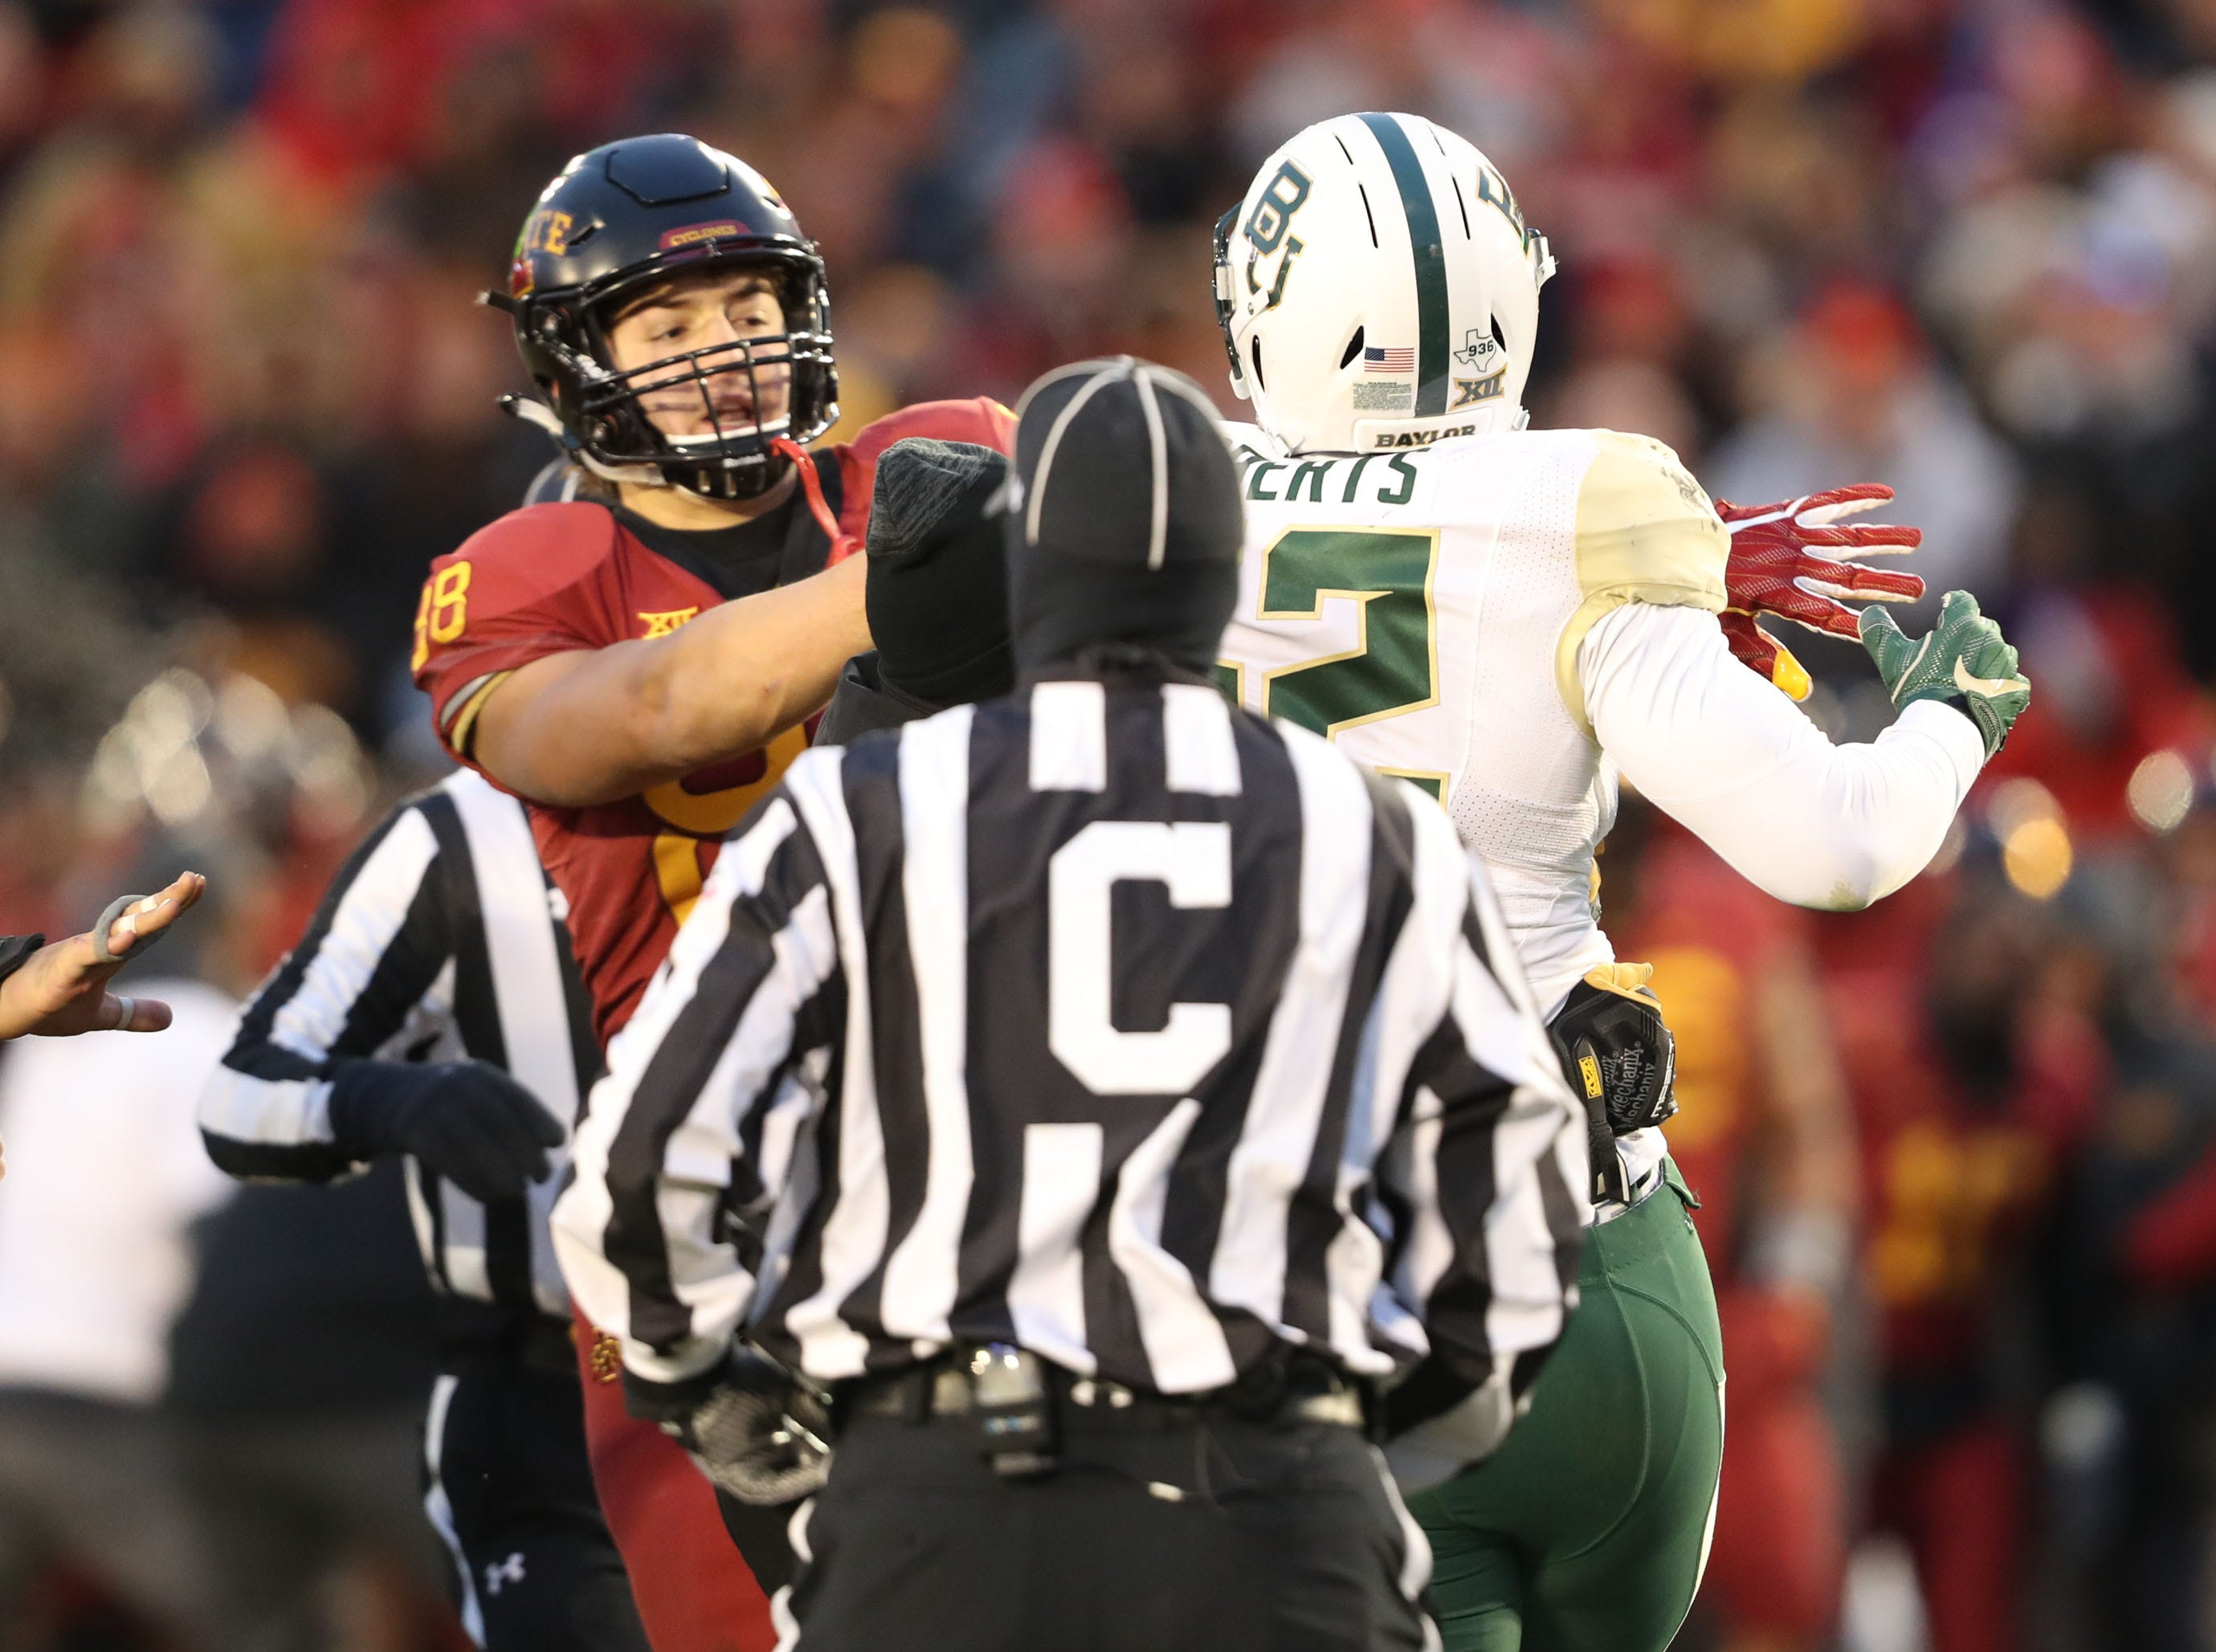 Baylor Bears defensive end Greg Roberts (52) and Iowa State Cyclones tight end Charlie Kolar (88) scuffle during their game at Jack Trice Stadium.